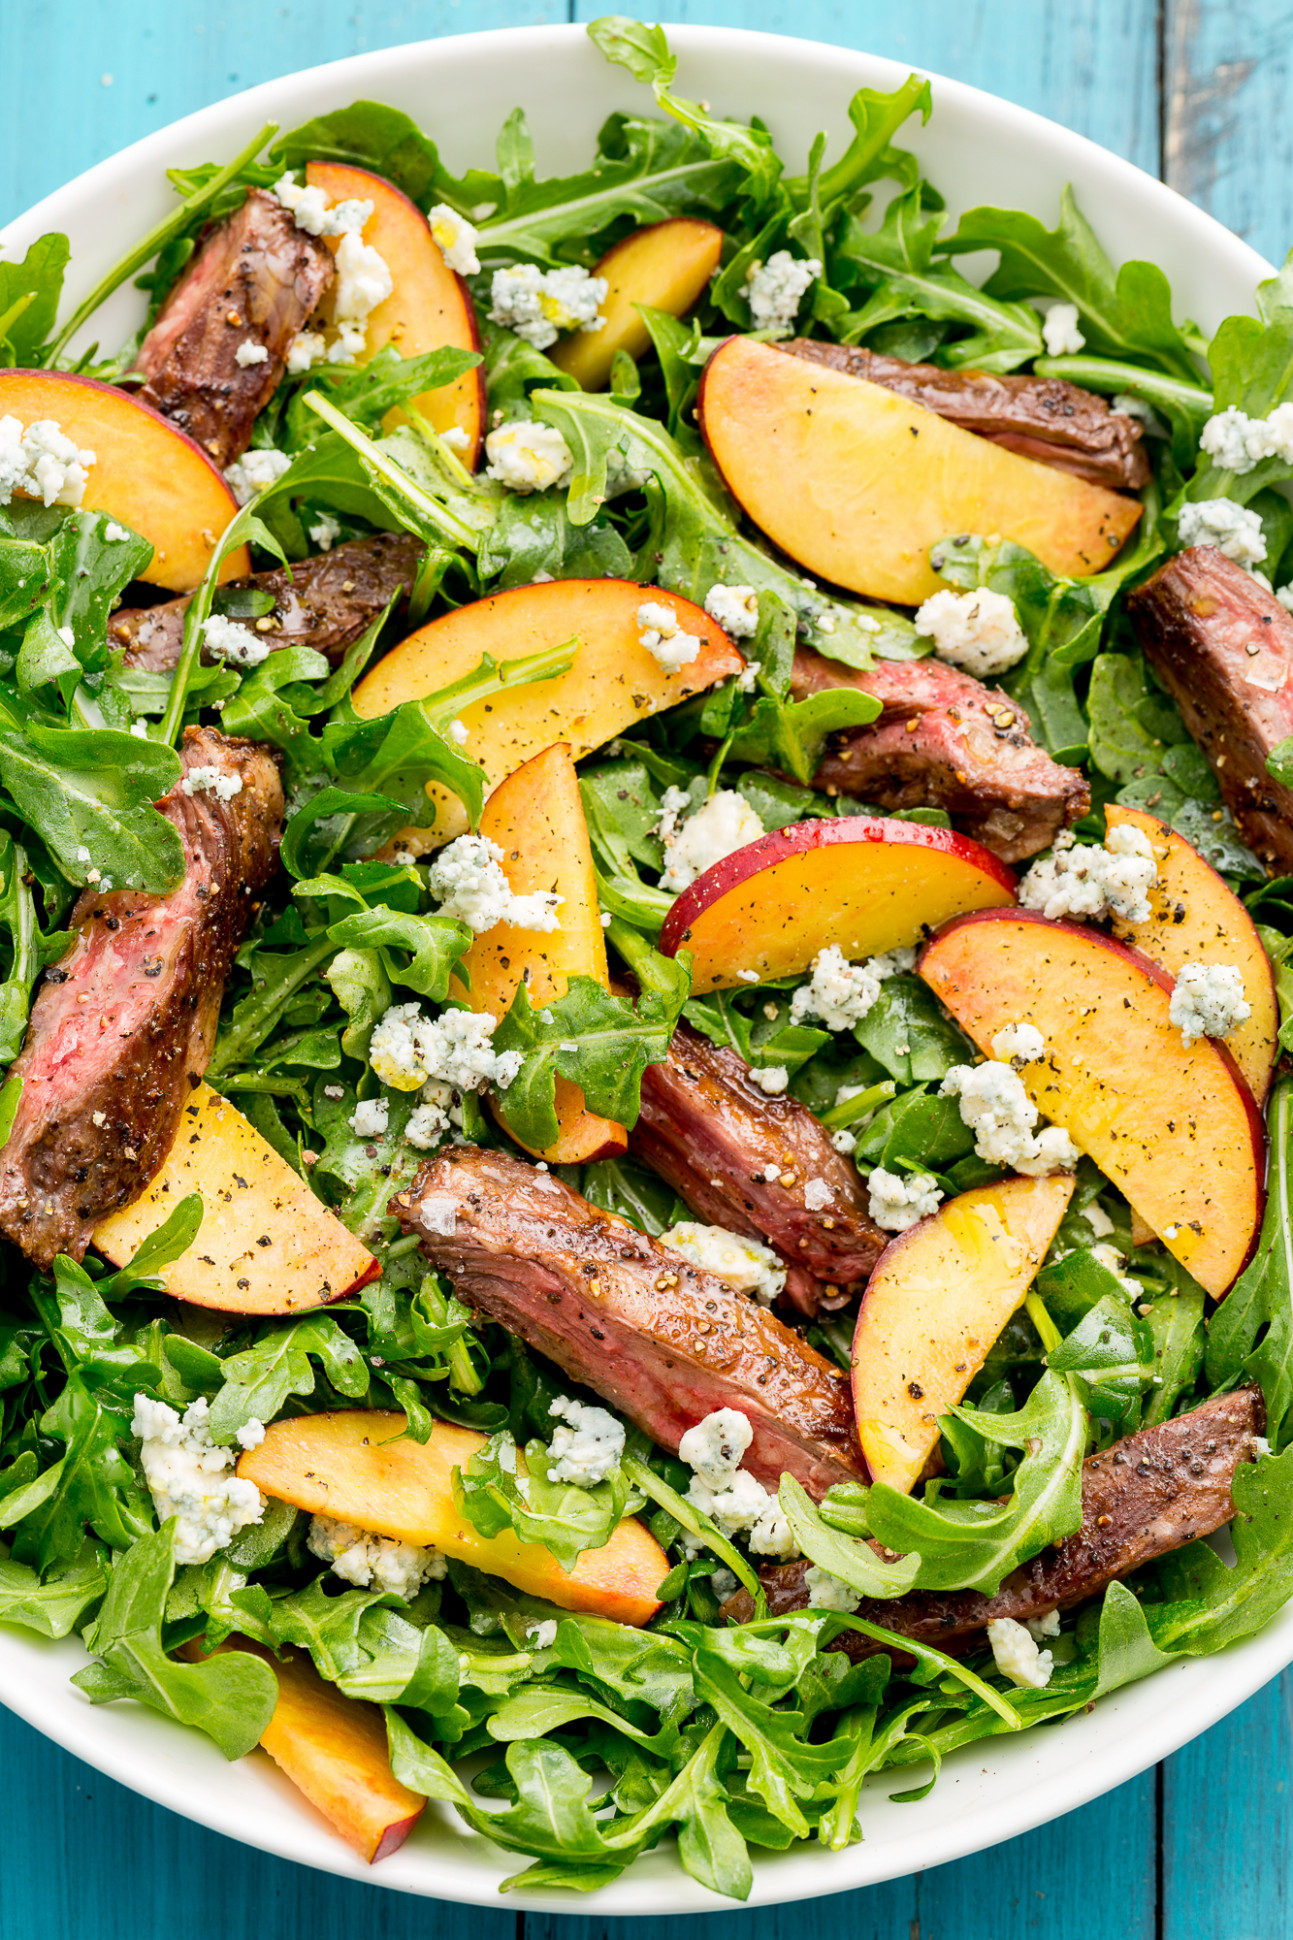 13 Best Arugula Salad Recipes - Easy Arugula Salads—Delish